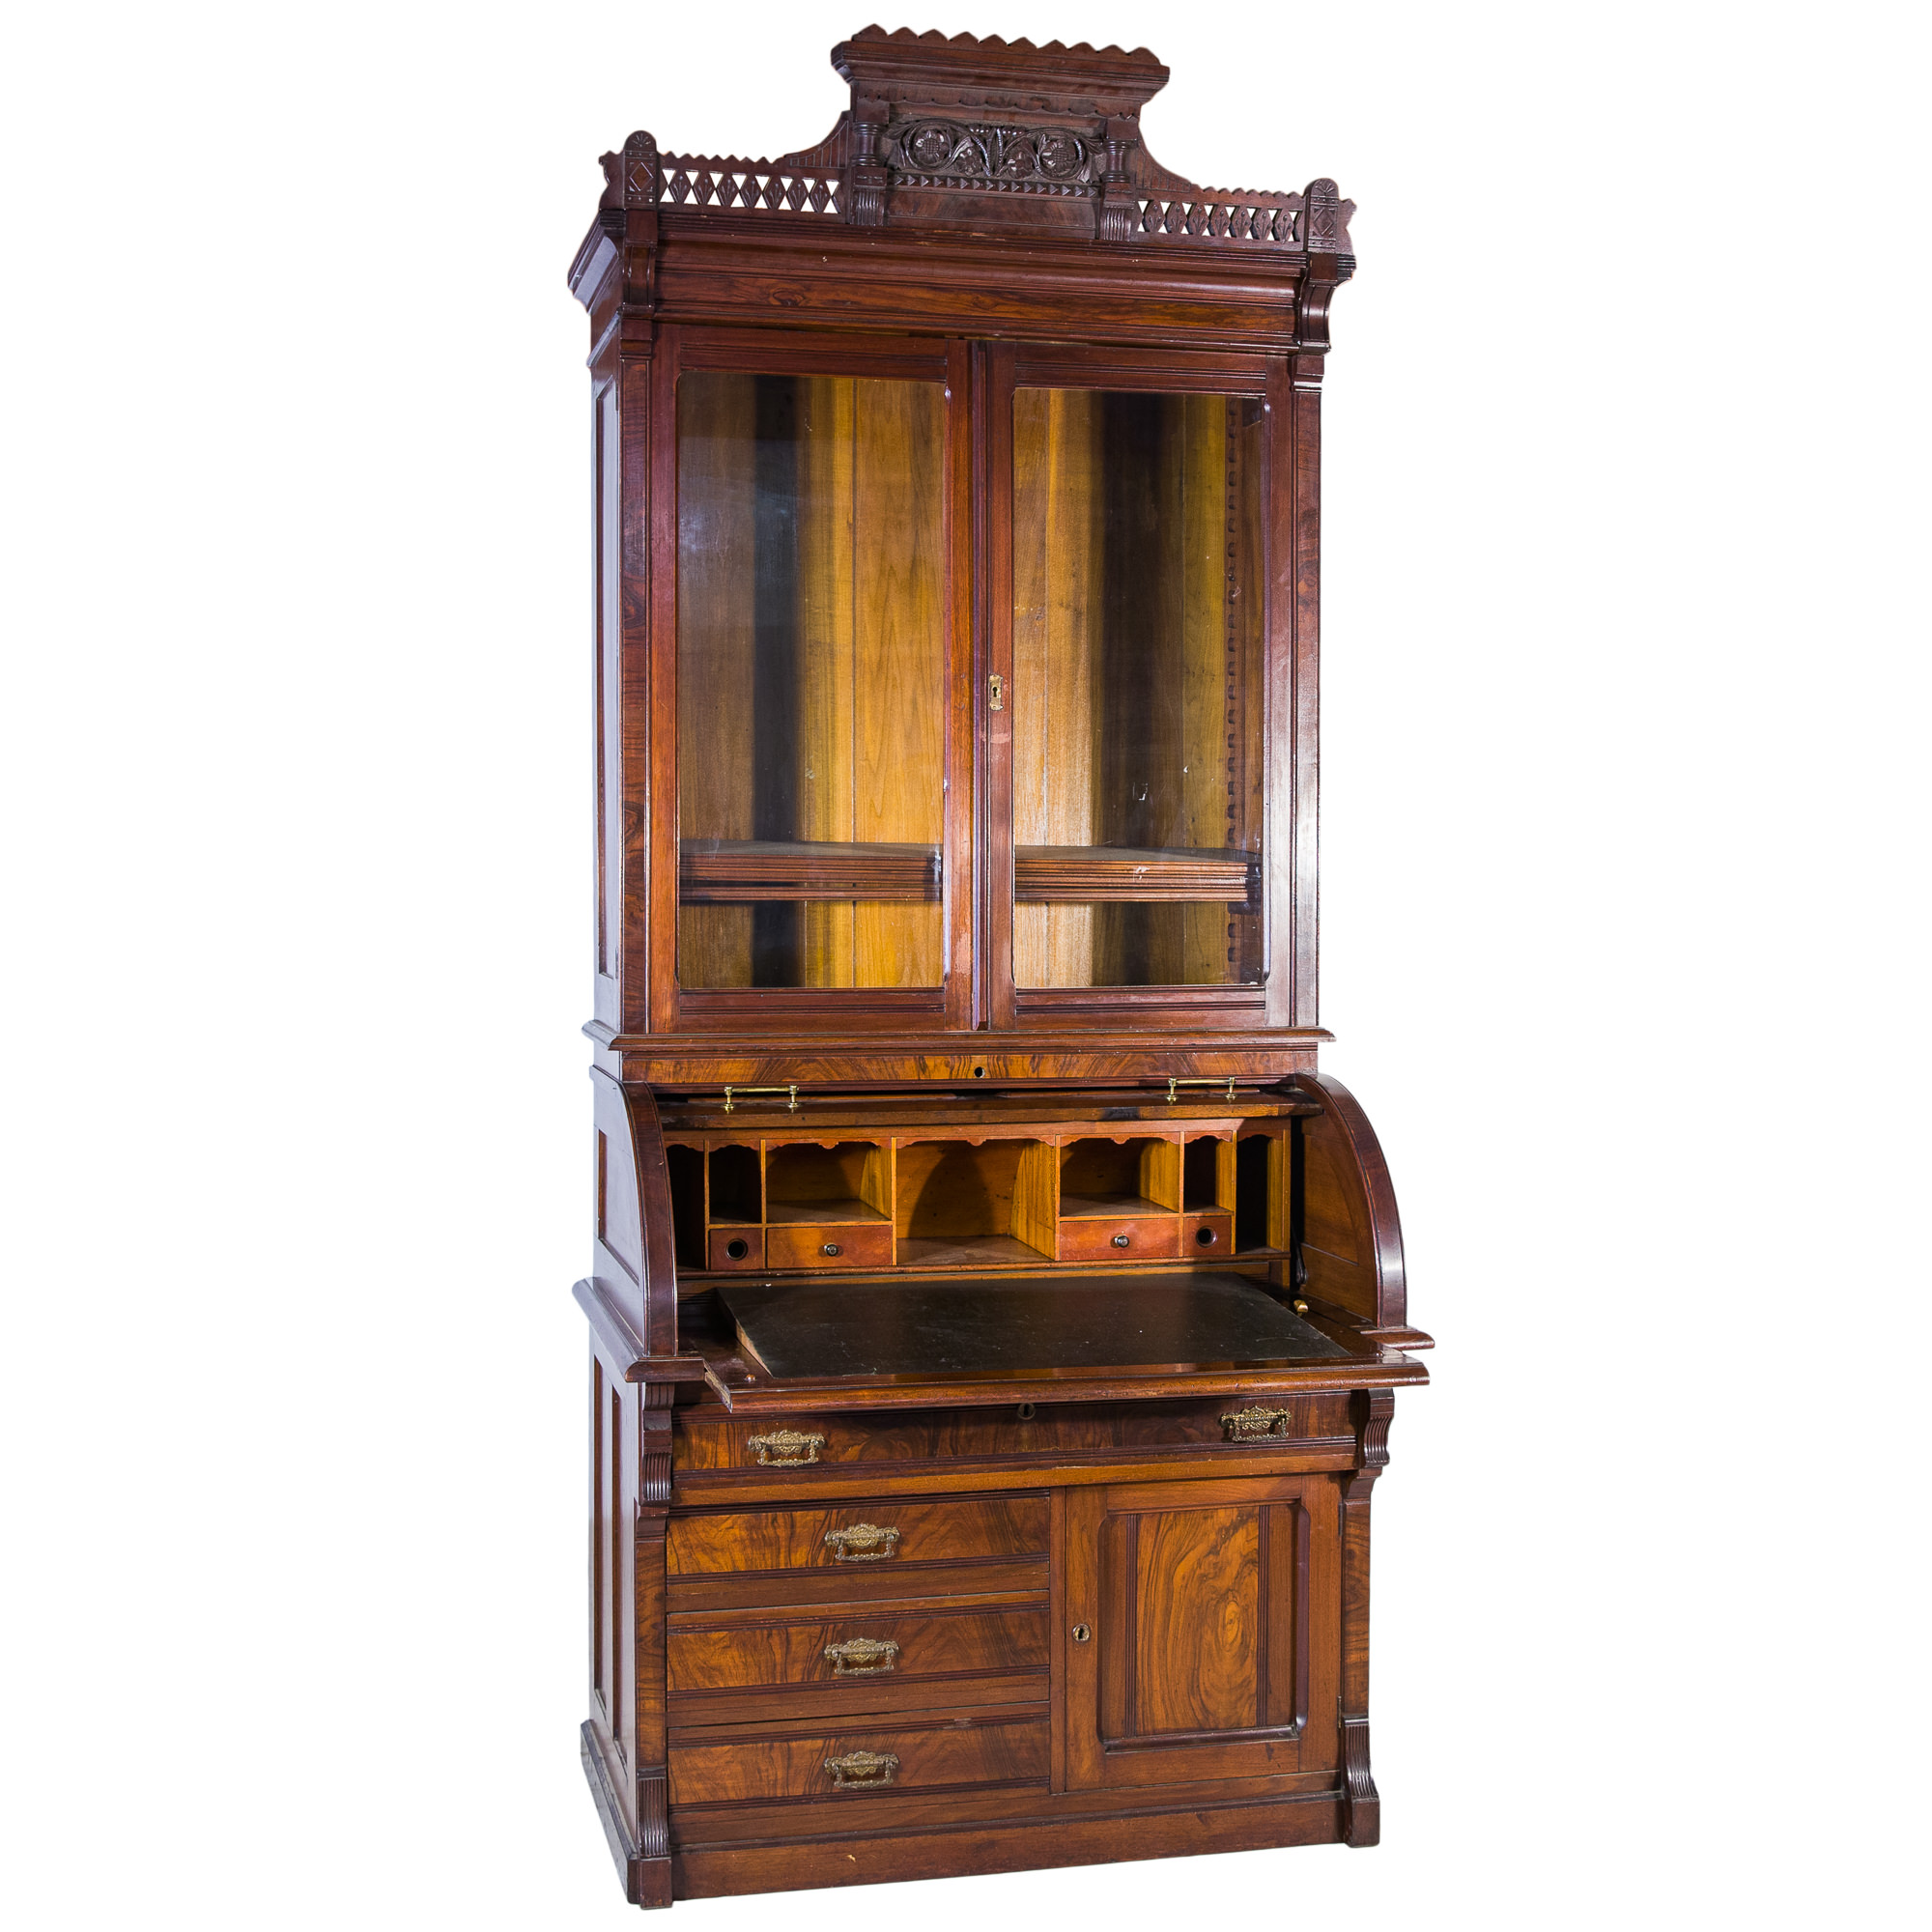 'Walnut Cylinder Top Secretaire Bookcase in the Manner of Charles Eastlake Circa 1890'